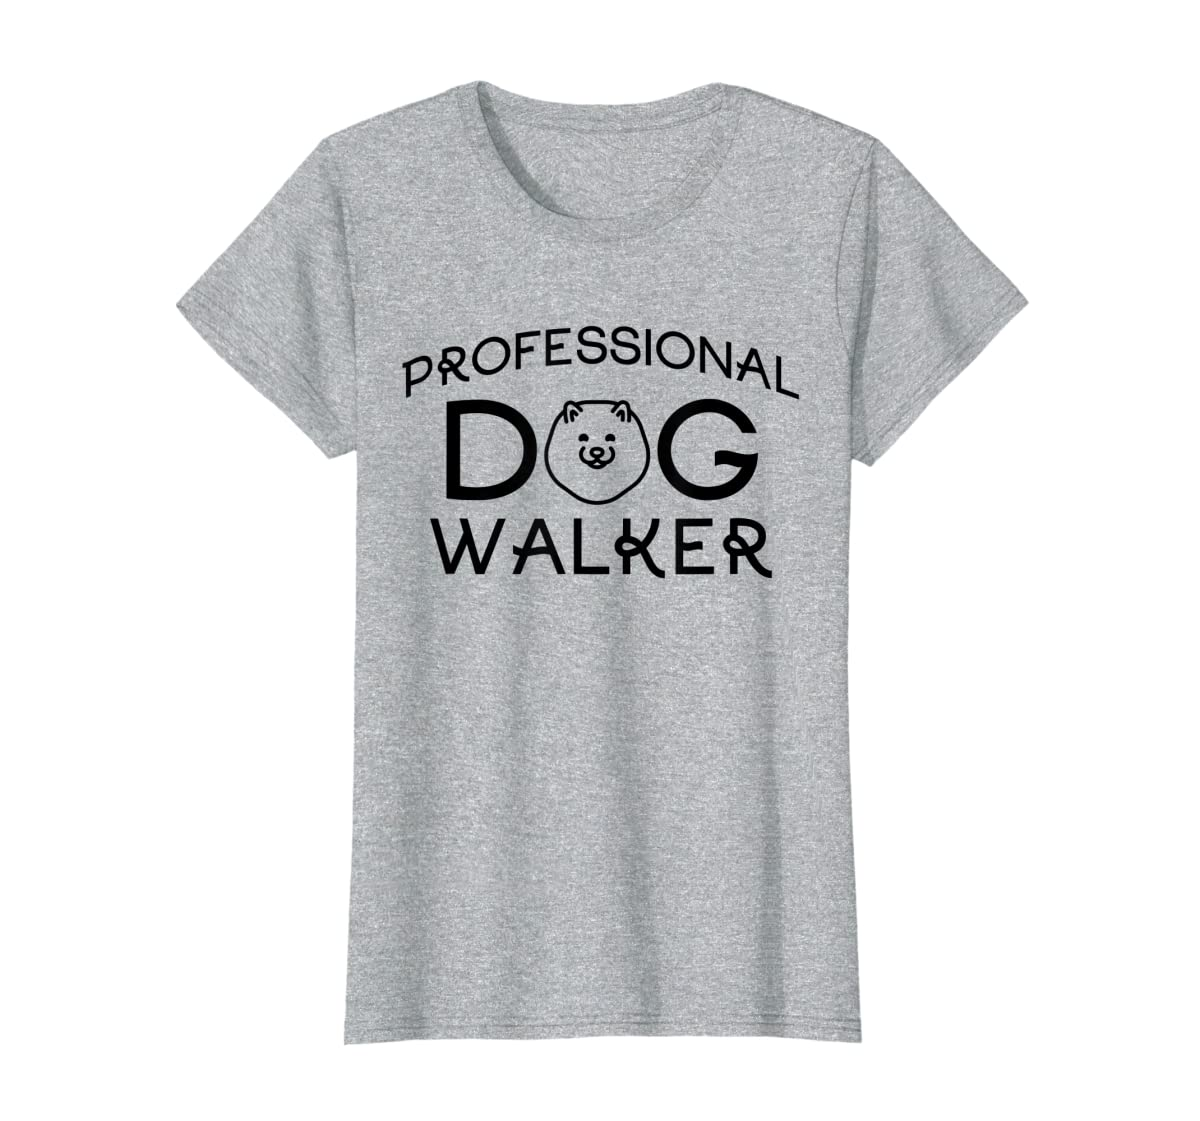 Professional Dog Walker Cute Puppy Tshirt Pet Lover T-Shirt-Women's T-Shirt-Sport Grey